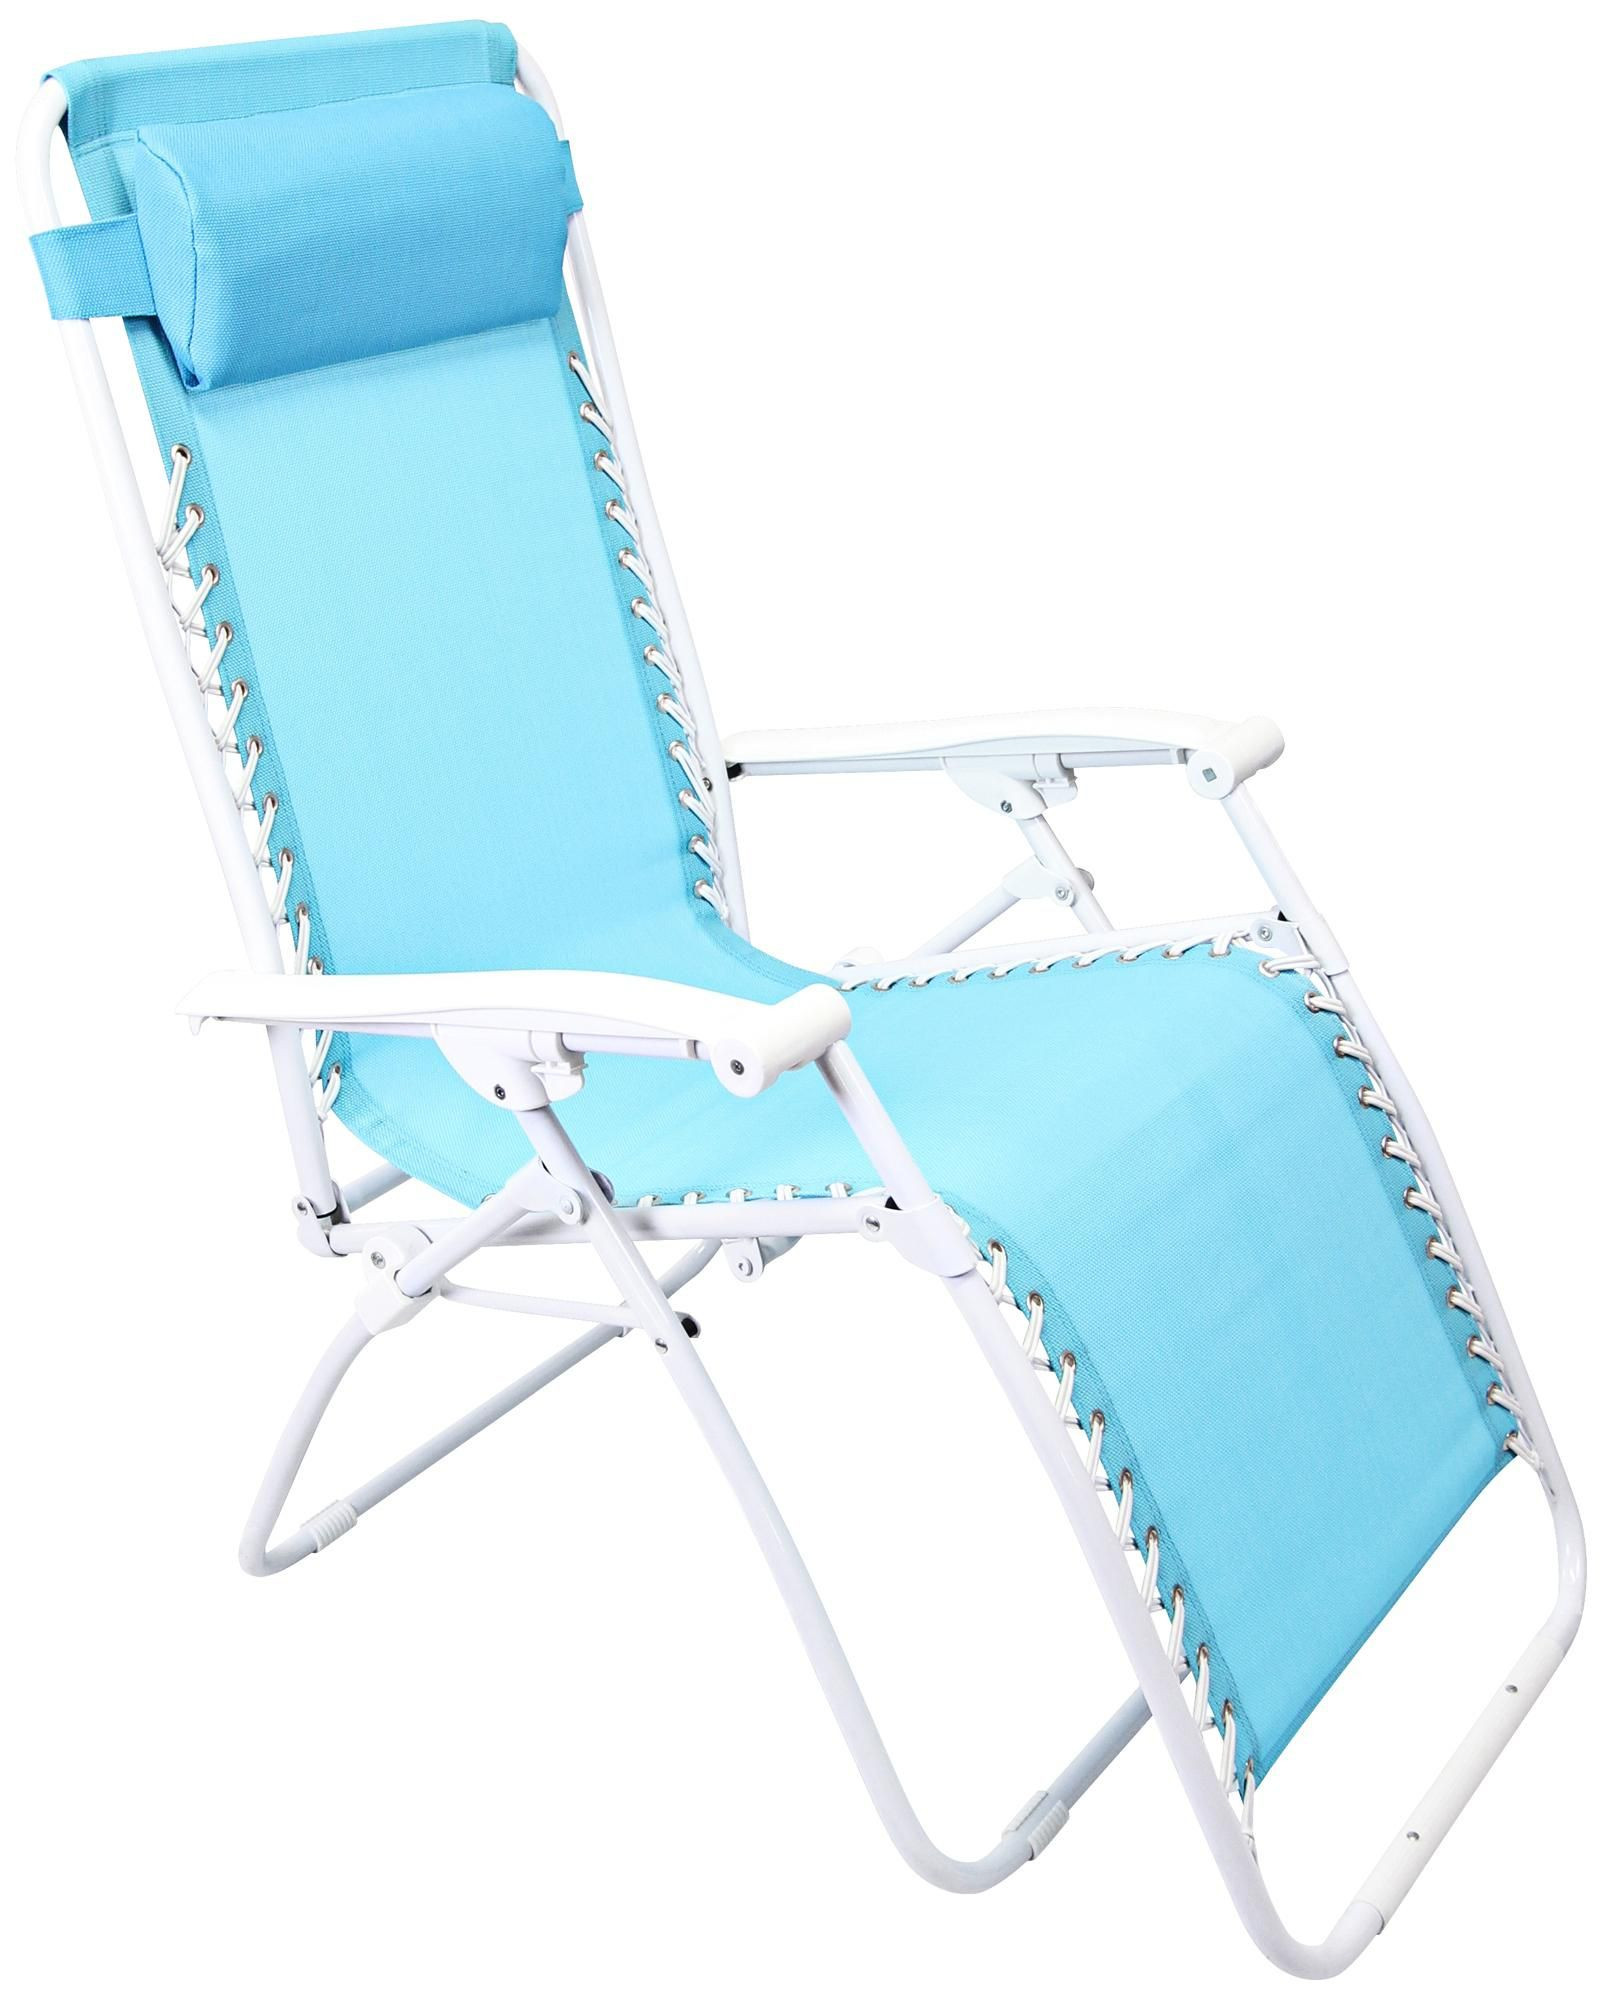 Zero Gravity Turquoise Outdoor Chaise Lounge 2f627 Lamps Plus Outdoor Chaise Lounge Chair Outdoor Chaise Lounge Gravity Chair